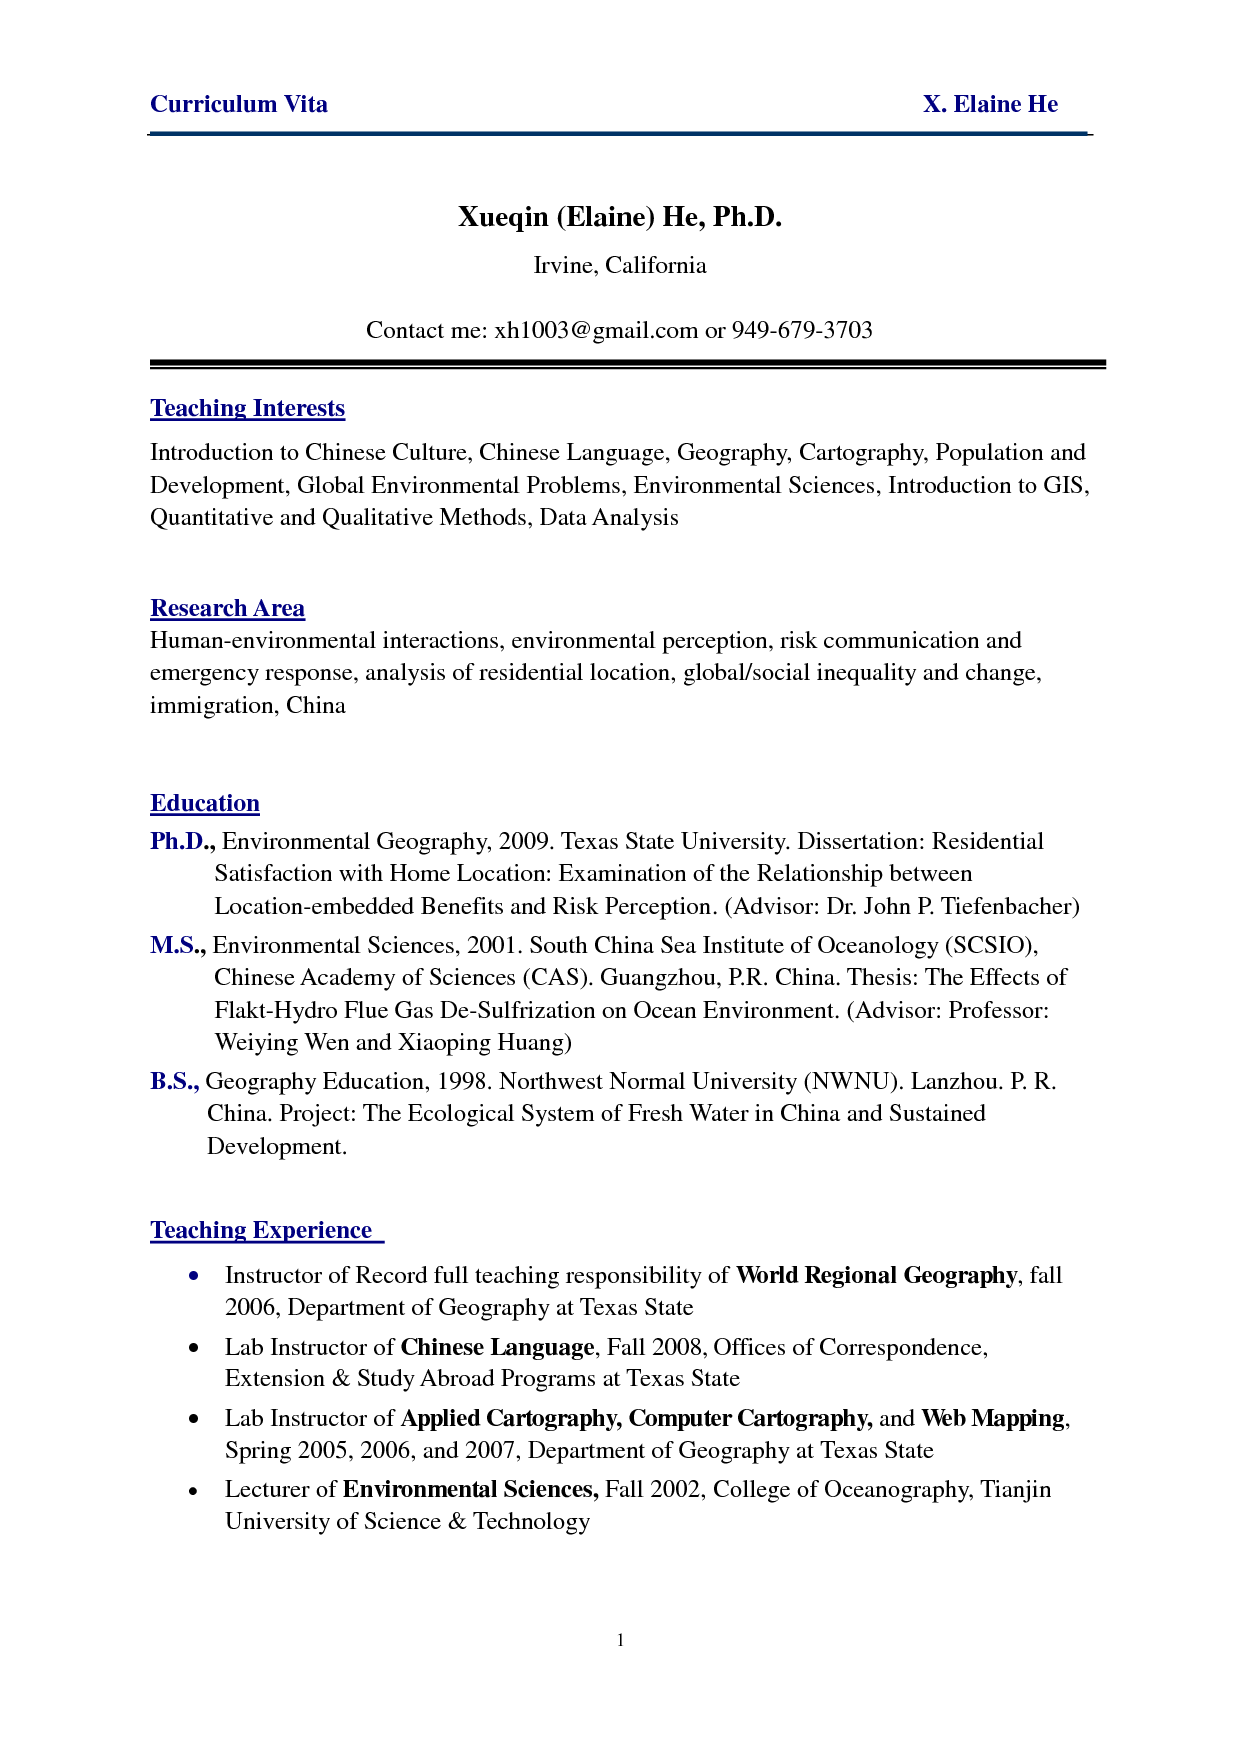 New Graduate Lpn Resume Sample New Grad Lpn Resume Sample Nursing Hacked Sample